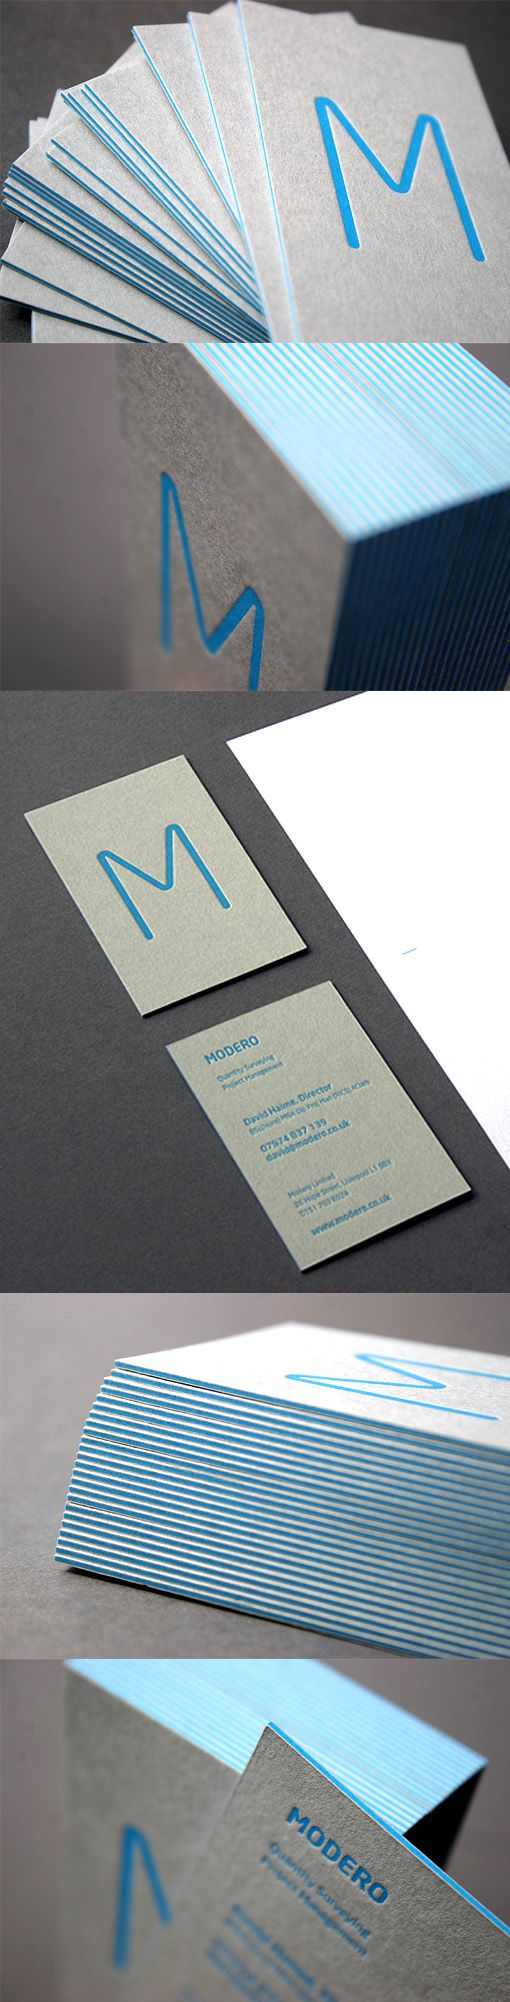 Minimalist business card letterpress printed on recycled card minimalist business card letterpress printed on recycled card stock magicingreecefo Gallery